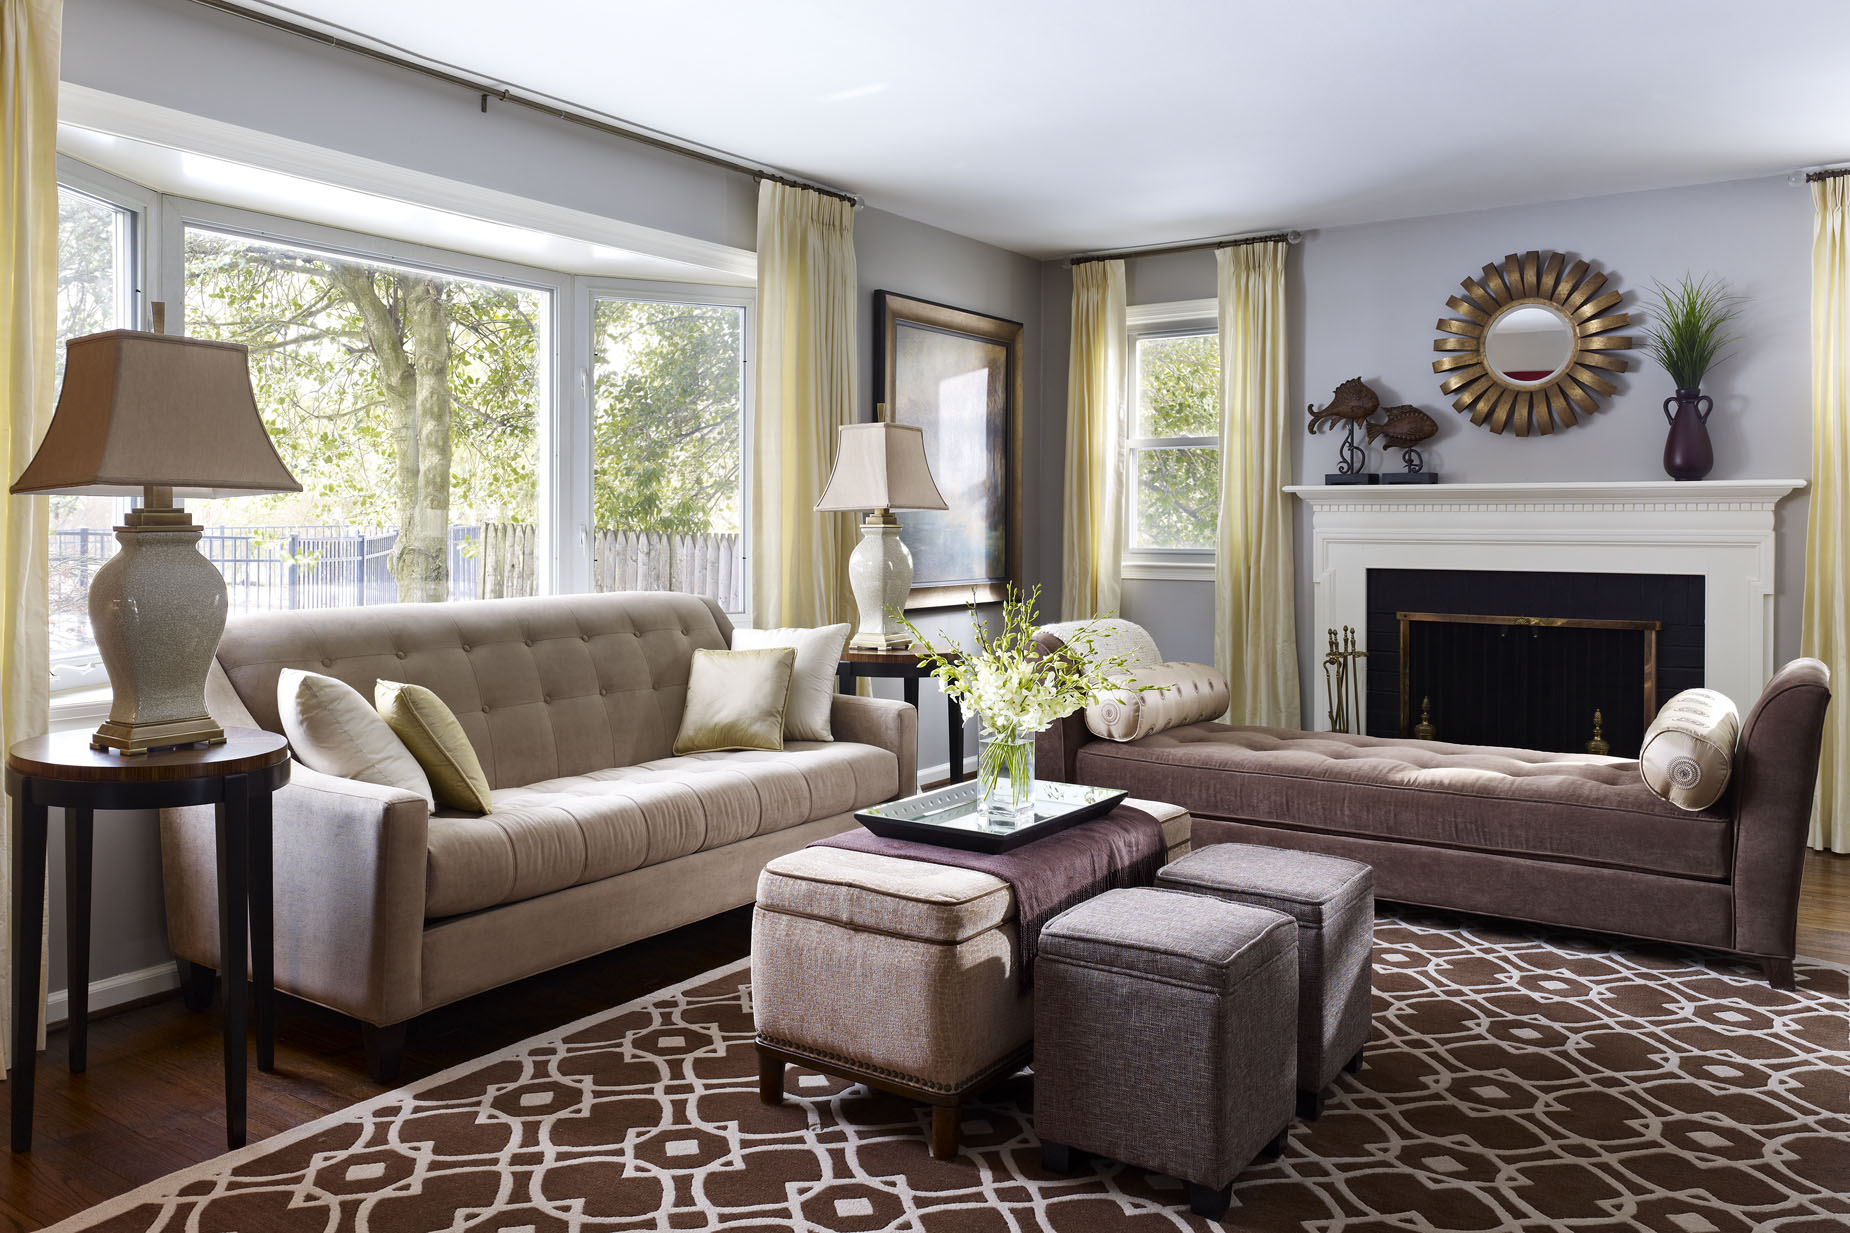 What\u0027s your design style??? Is it Transitional? & What\u0027s your design style??? Is it Transitional? | Decorating Den ...